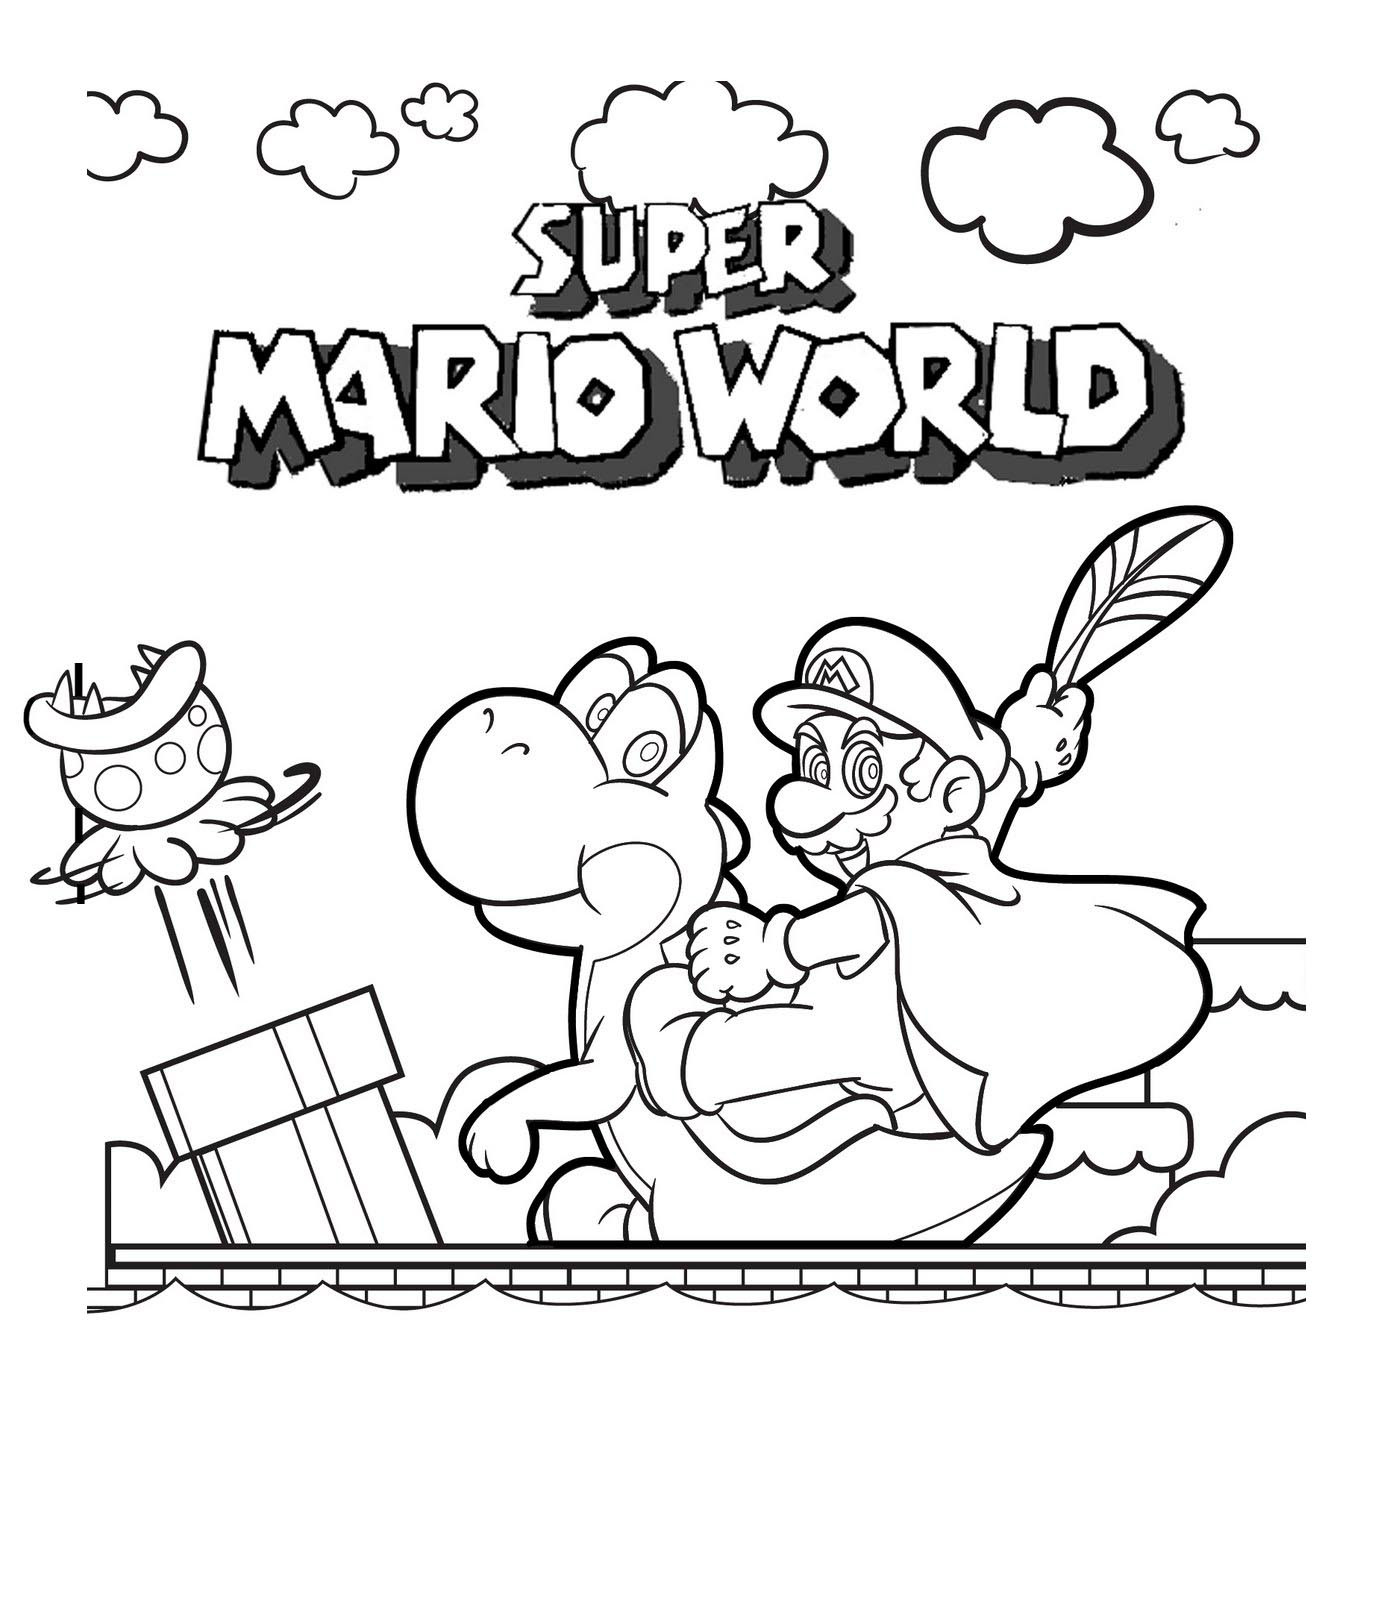 Super Mario Coloring Book  Free Printable Mario Coloring Pages For Kids